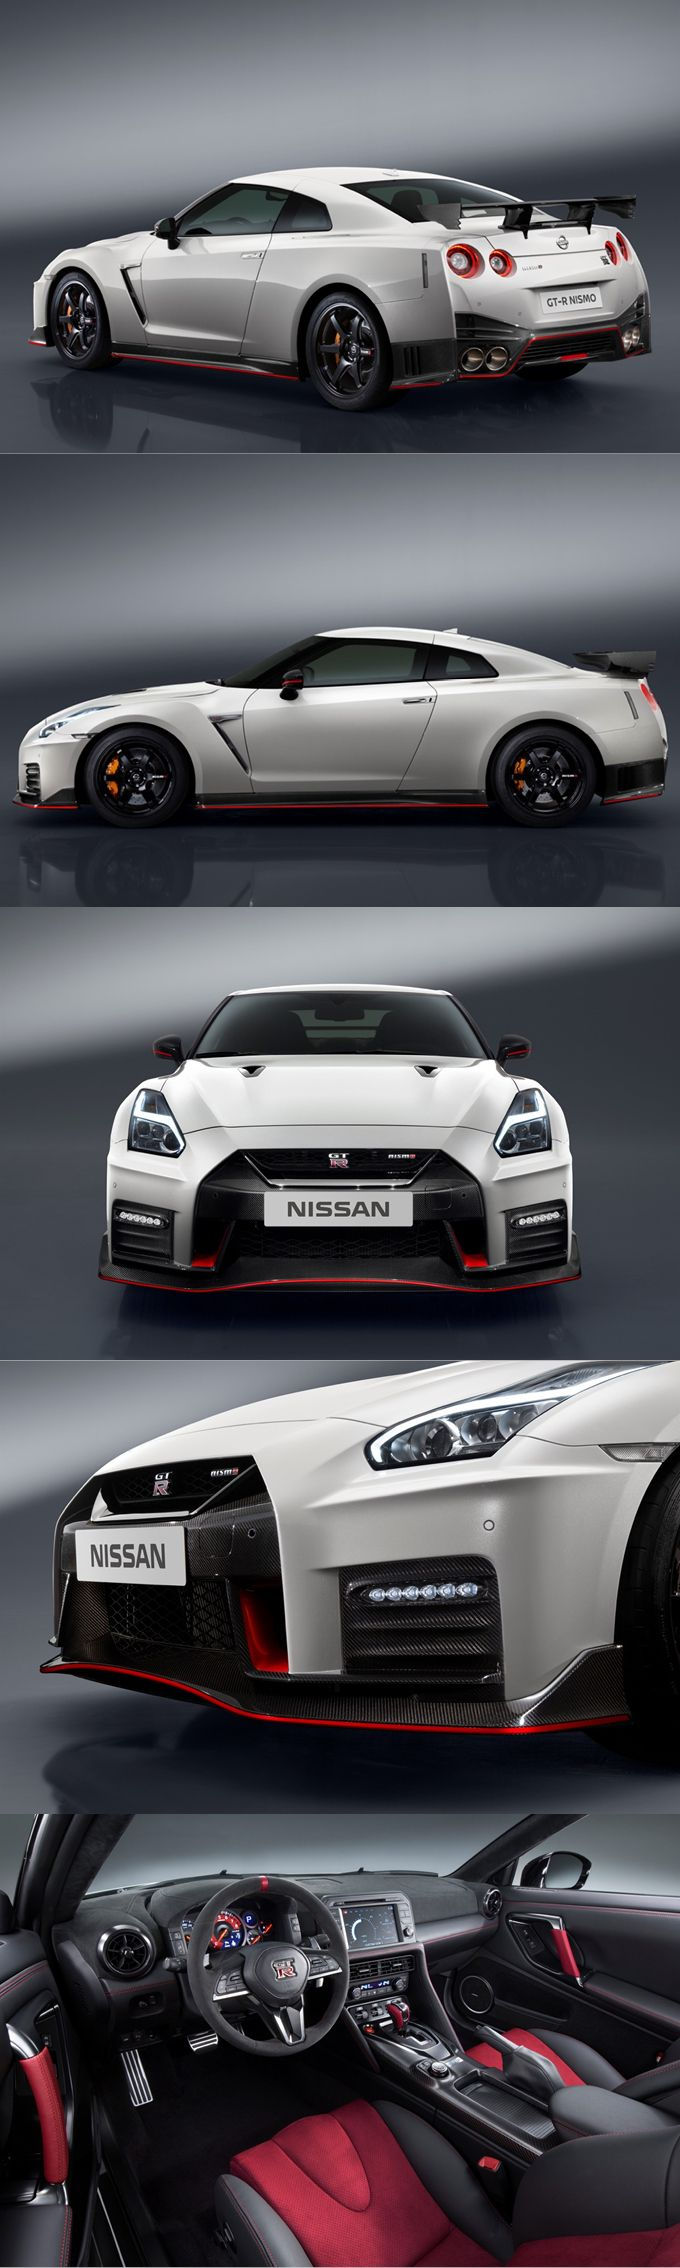 2016 Nissan GT-R Nismo / 600hp 3.8l V6 / Japan / red white / 17-385 https://www.amazon.co.uk/Baby-Car-Mirror-Shatterproof-Installation/dp/B06XHG6SSY/ref=sr_1_2?ie=UTF8&qid=1499074433&sr=8-2&keywords=Kingseye #NissanGTR